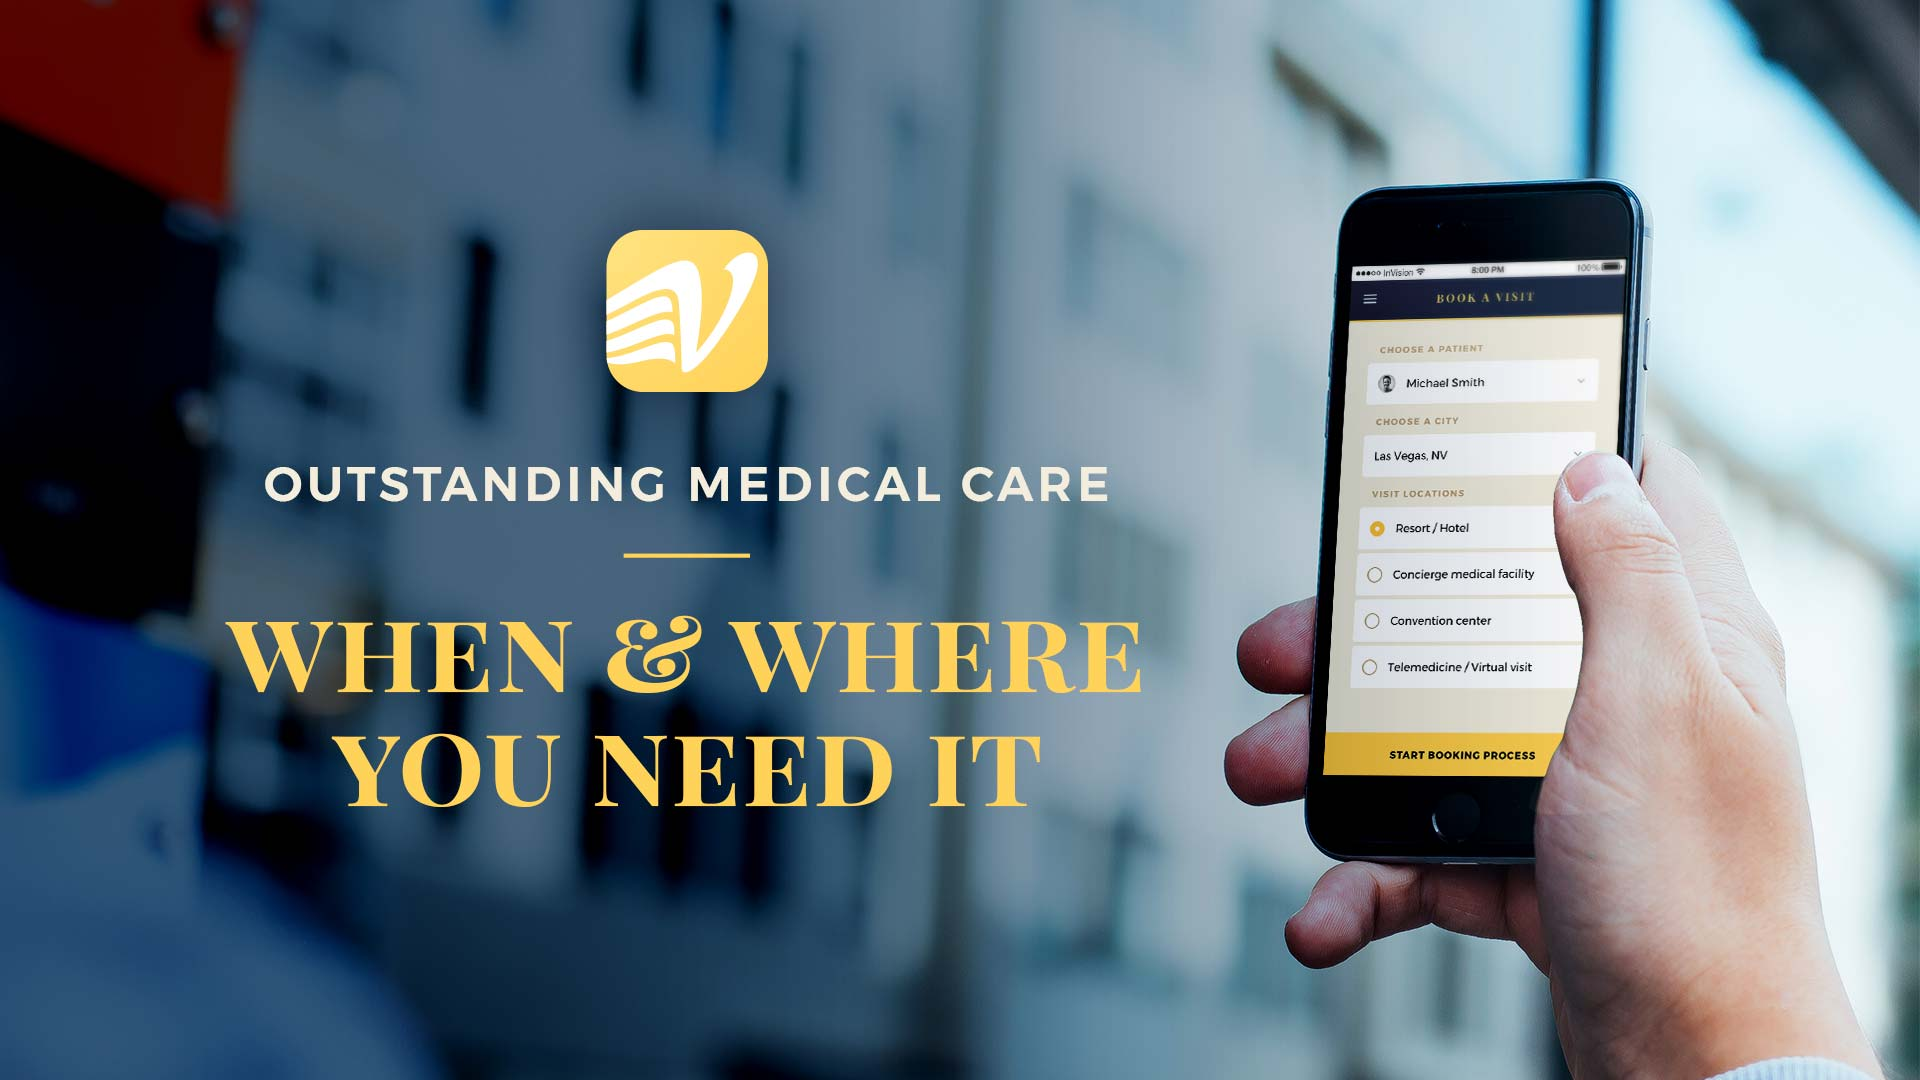 Outstanding Medical Care When & Where You Need It